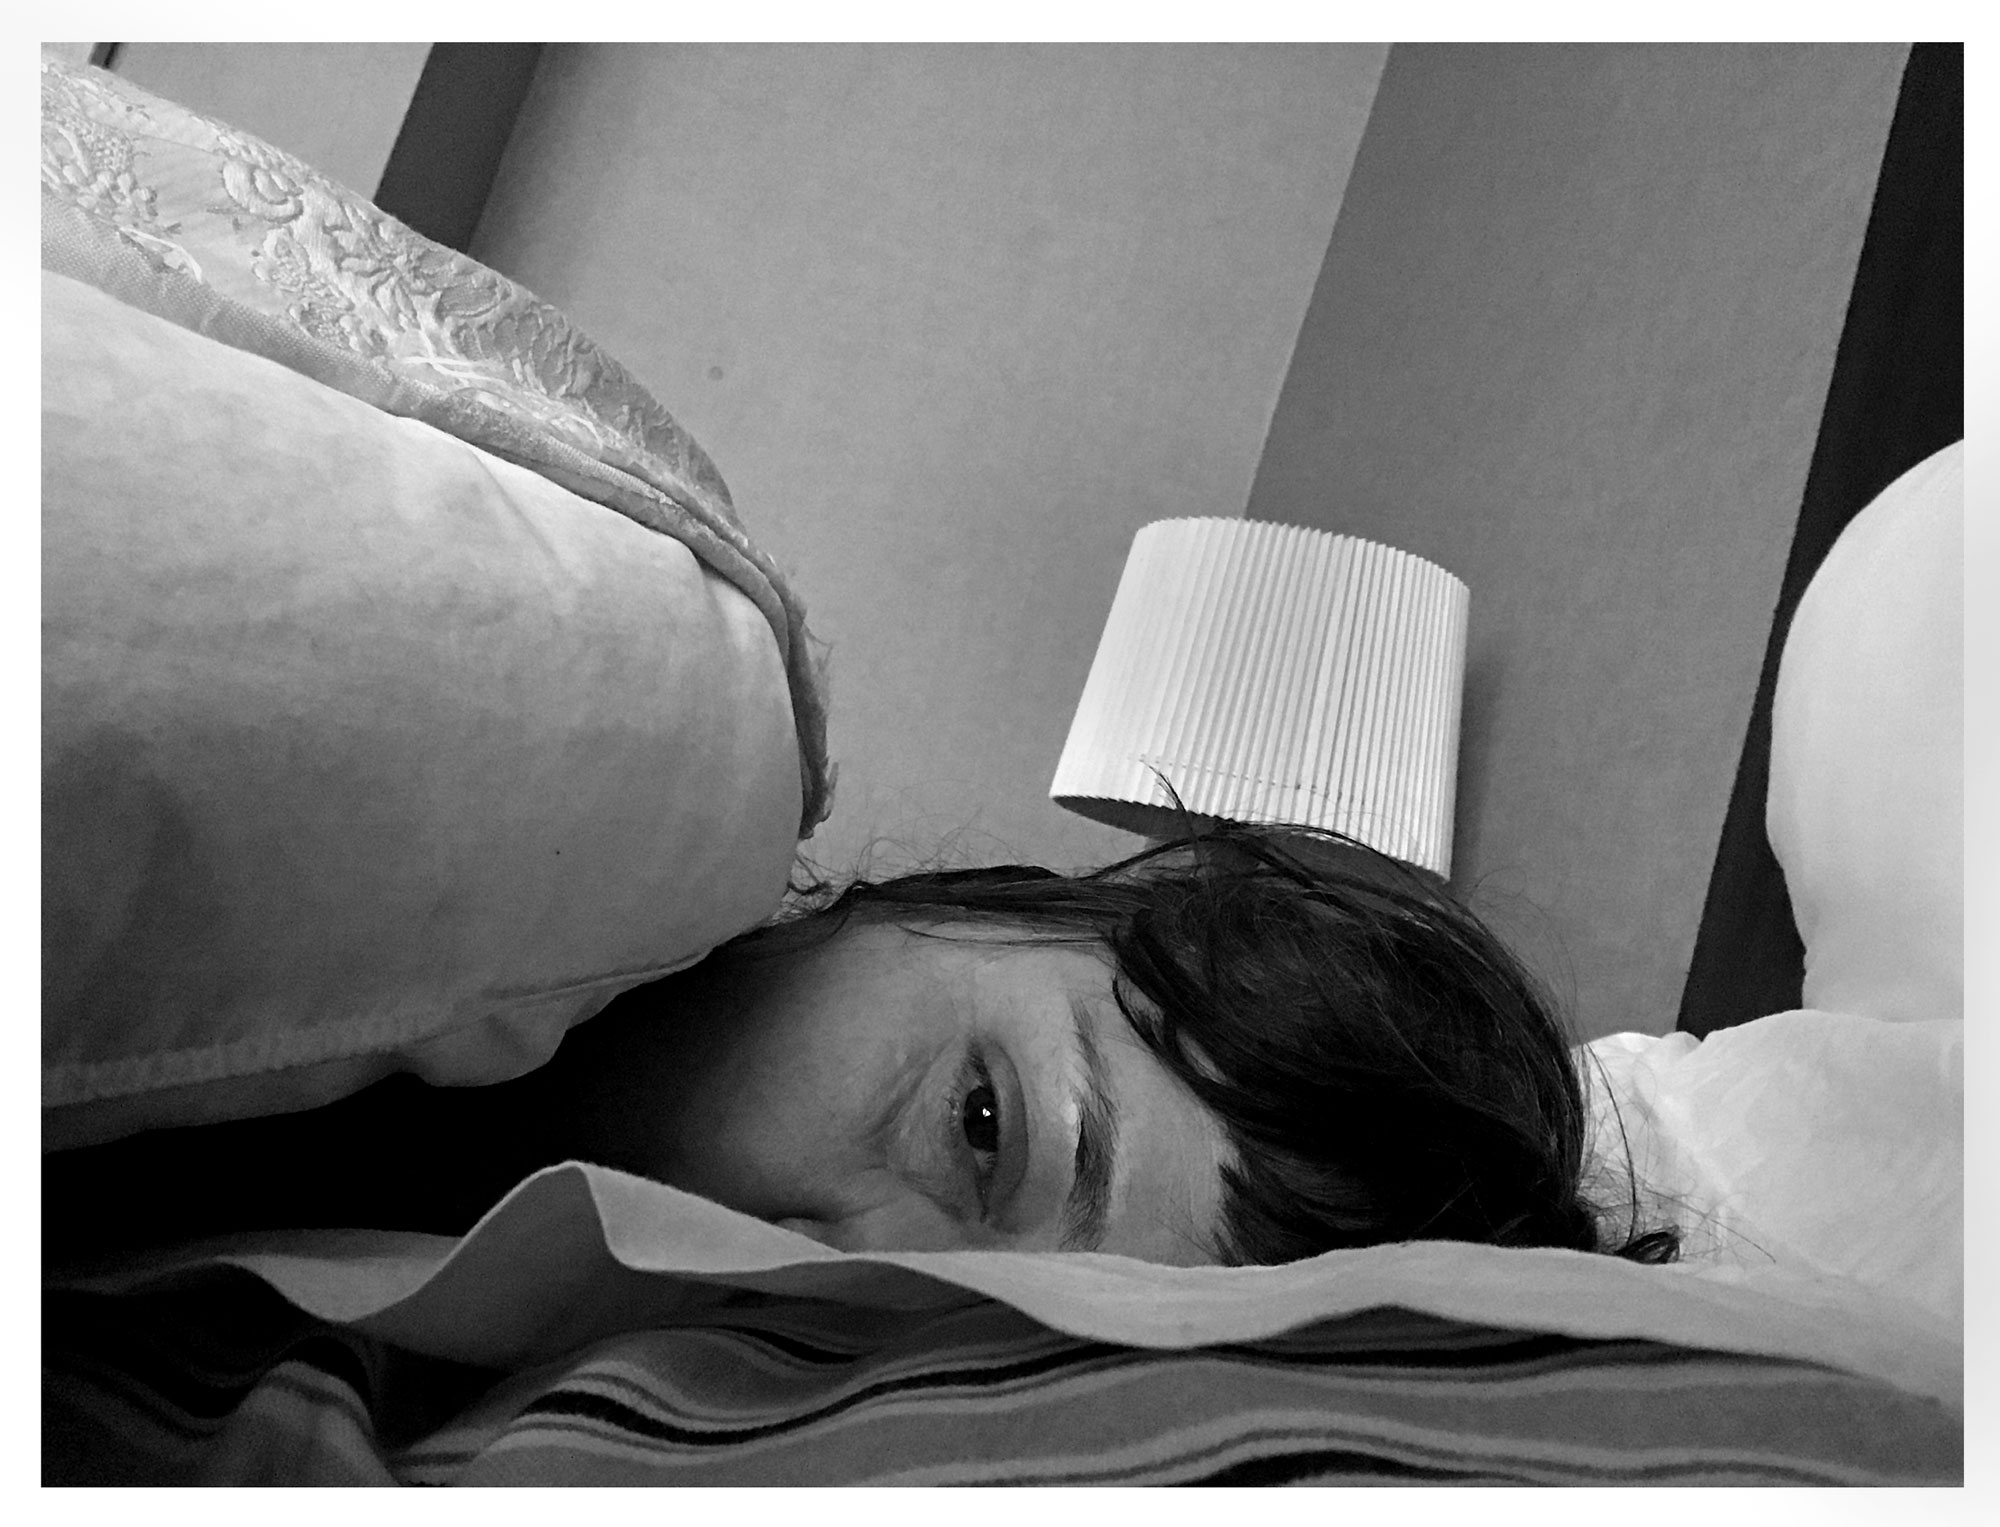 In bed on the day after Mum's funeral. My 47th birthday. 6th September 2017